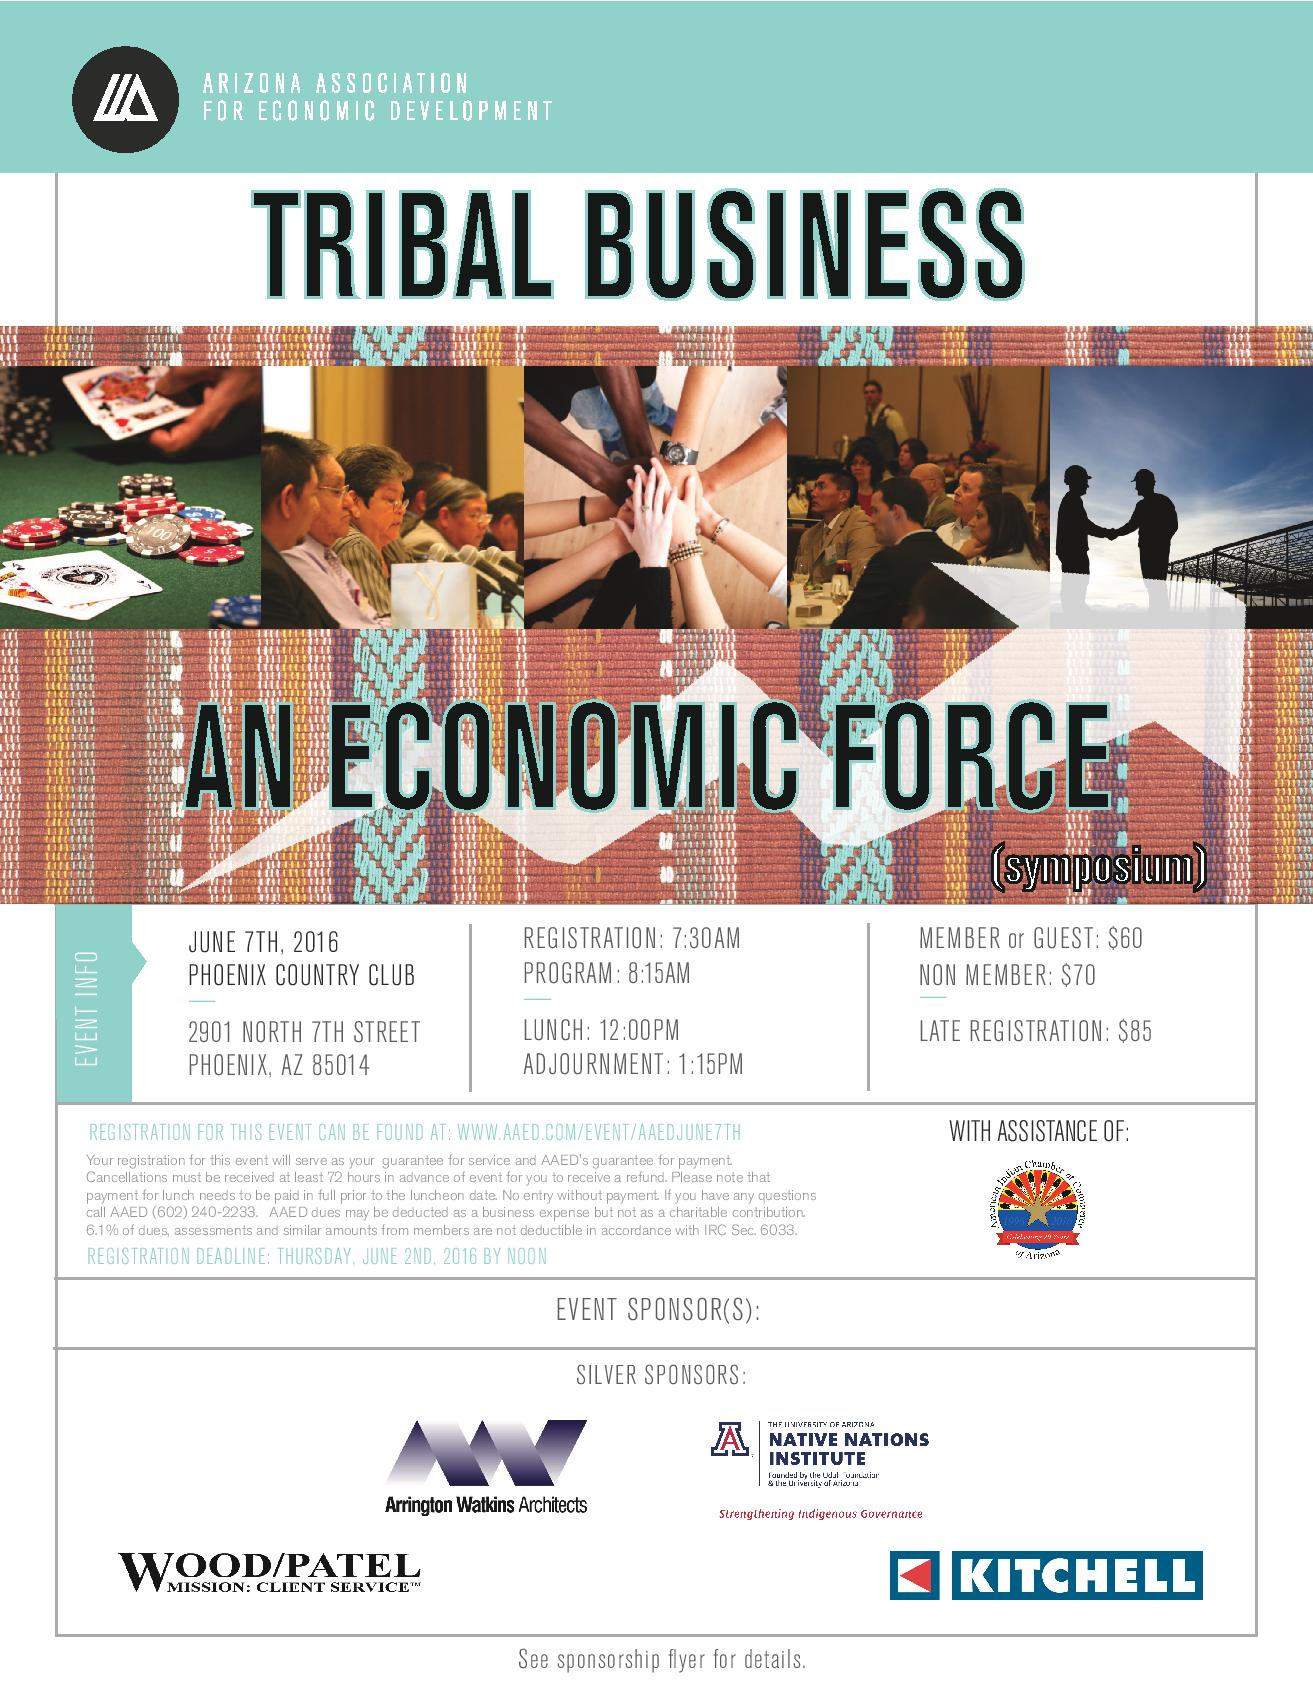 AAED, Tribal Business: And Economic Force (Symposium) @ Phoenix Country Club | Phoenix | Arizona | United States